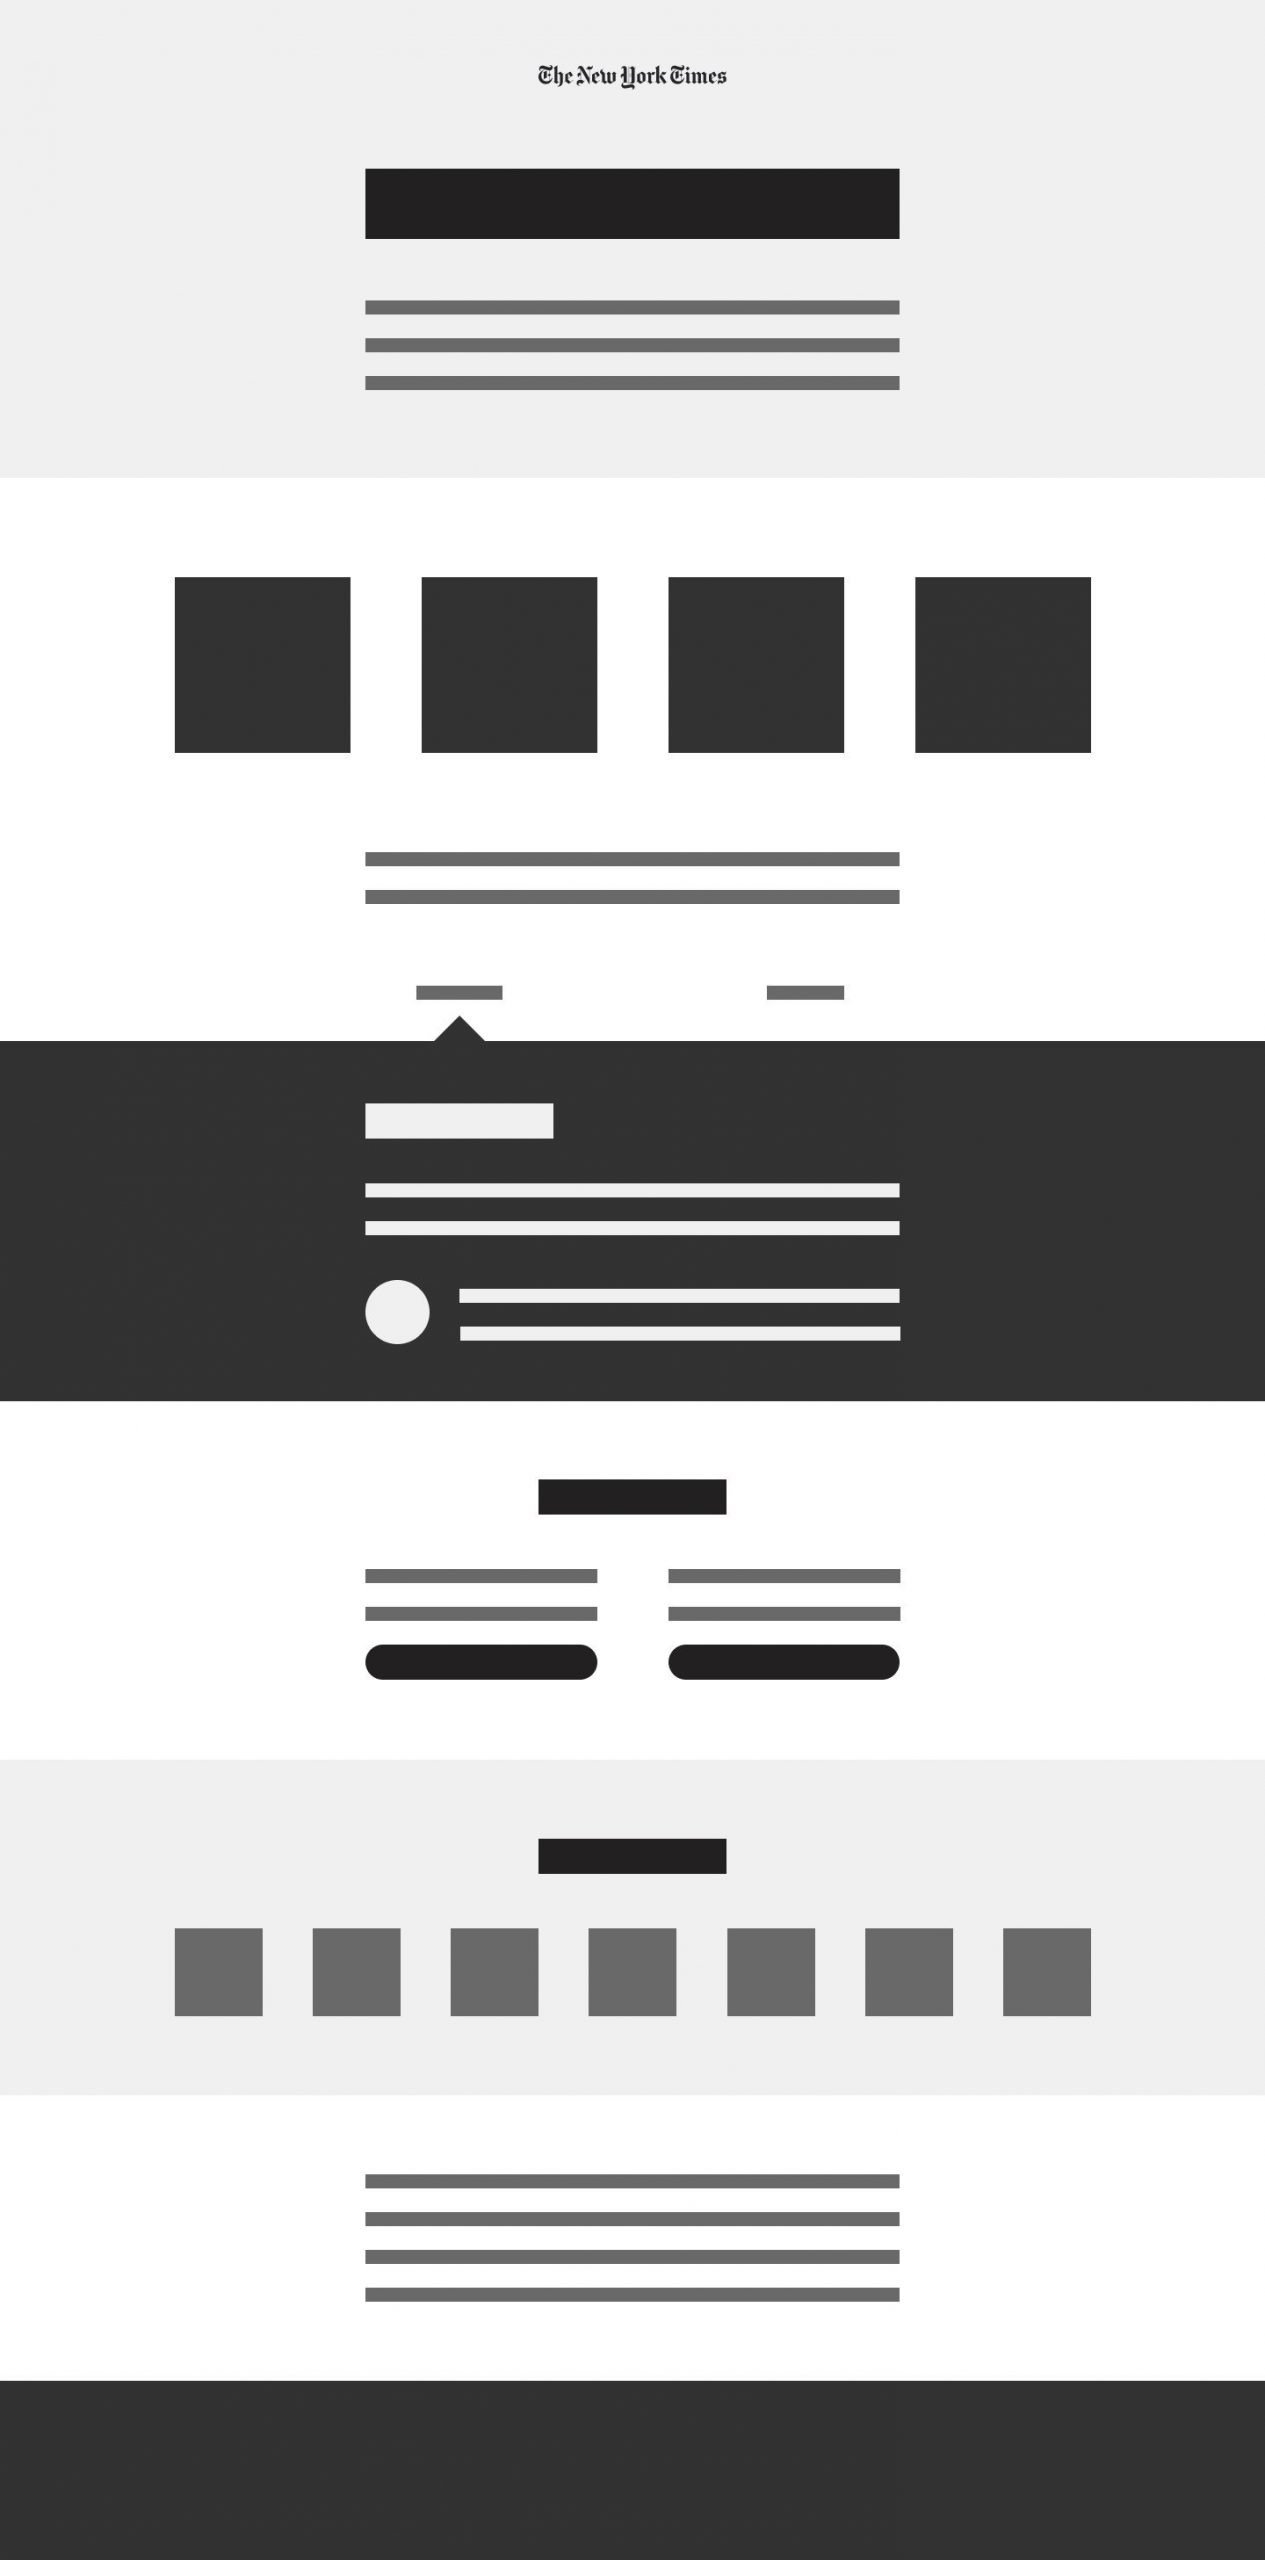 nyt-b2b-gs-wireframe